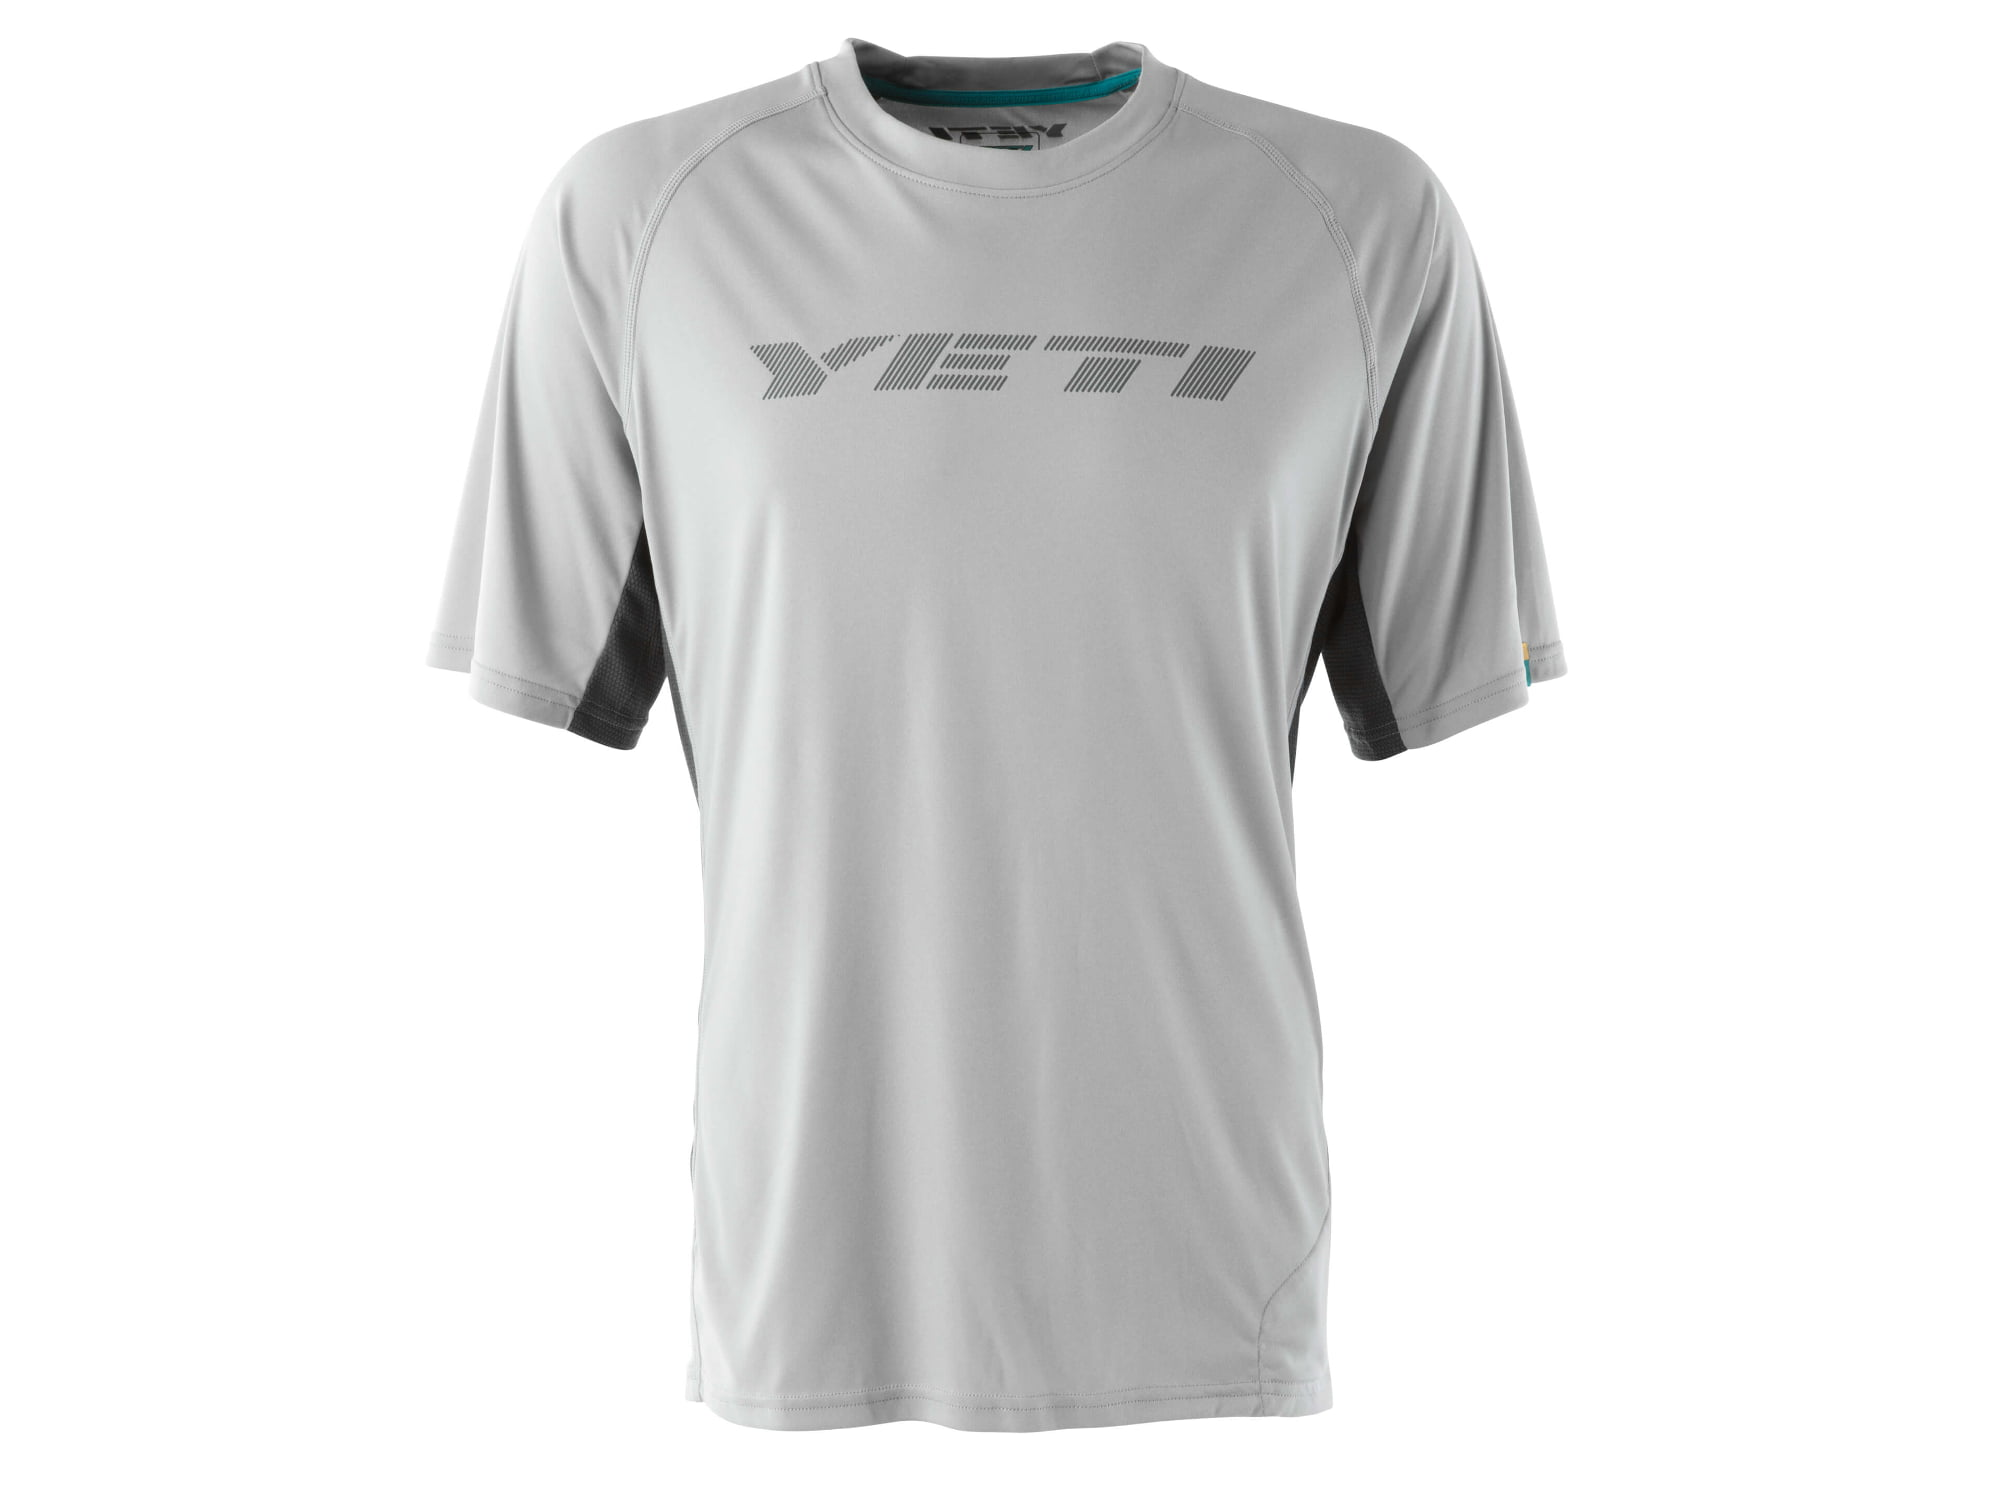 YETI CYCLES GREY TOLLAND JERSEY 8a890afec